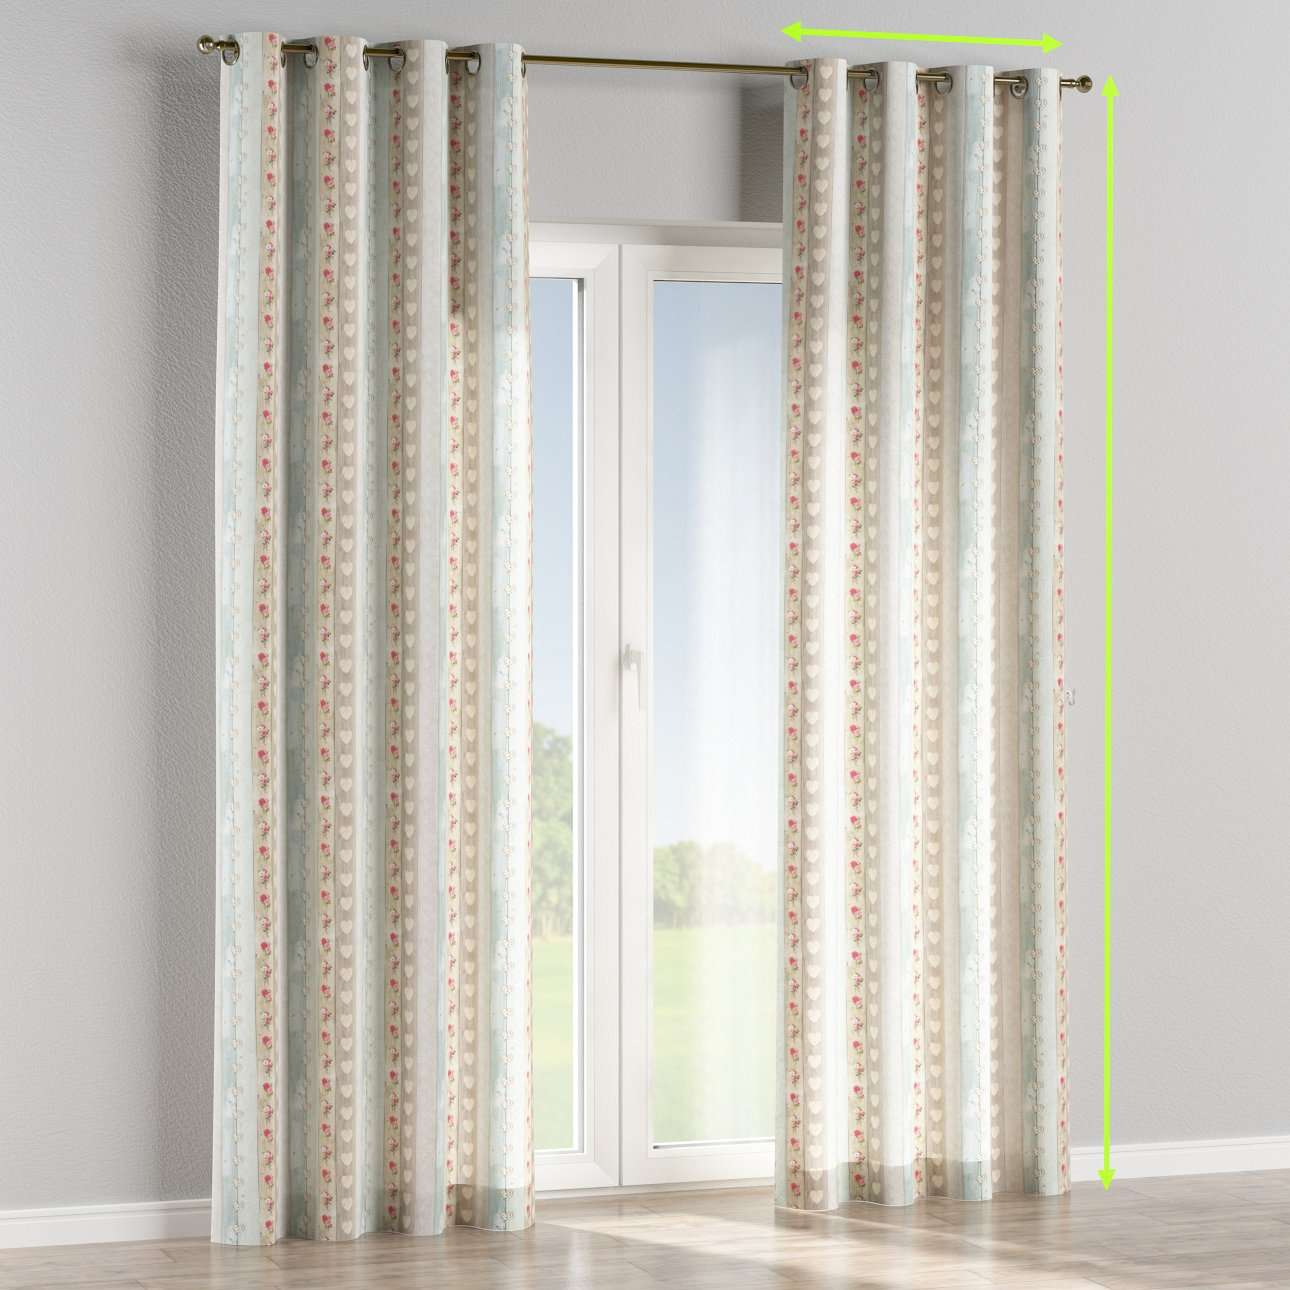 Eyelet curtains in collection Ashley, fabric: 140-20